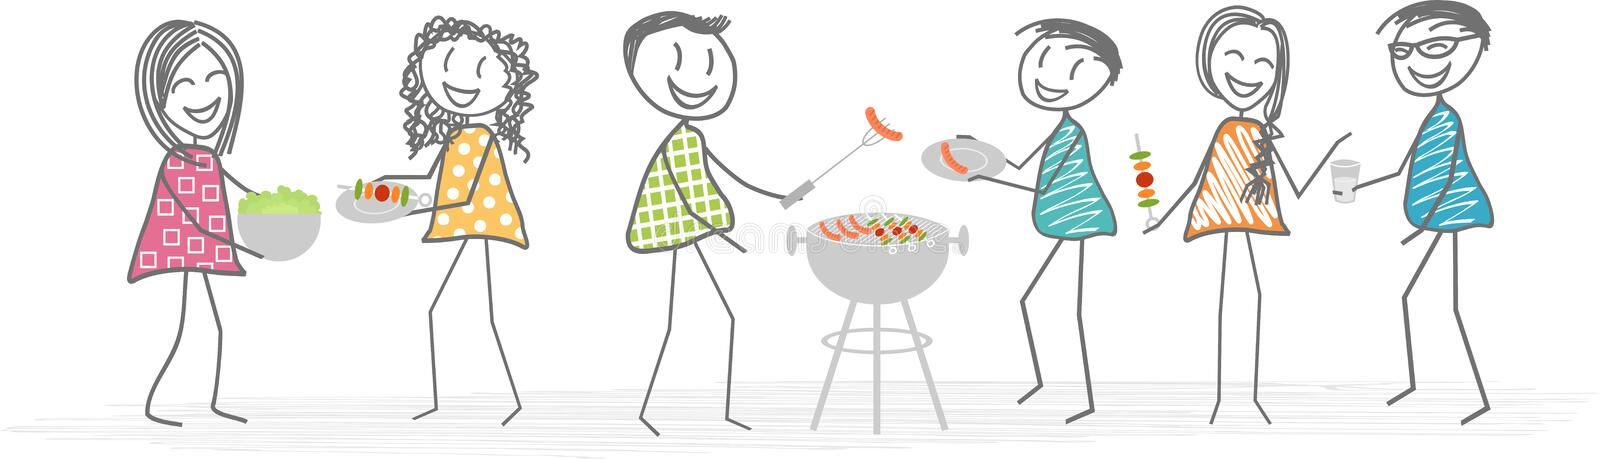 Barbecue with friends or neighbors. A group of friends or neighbors is gathered around a barbecue in a garden for a nice meal vector illustration